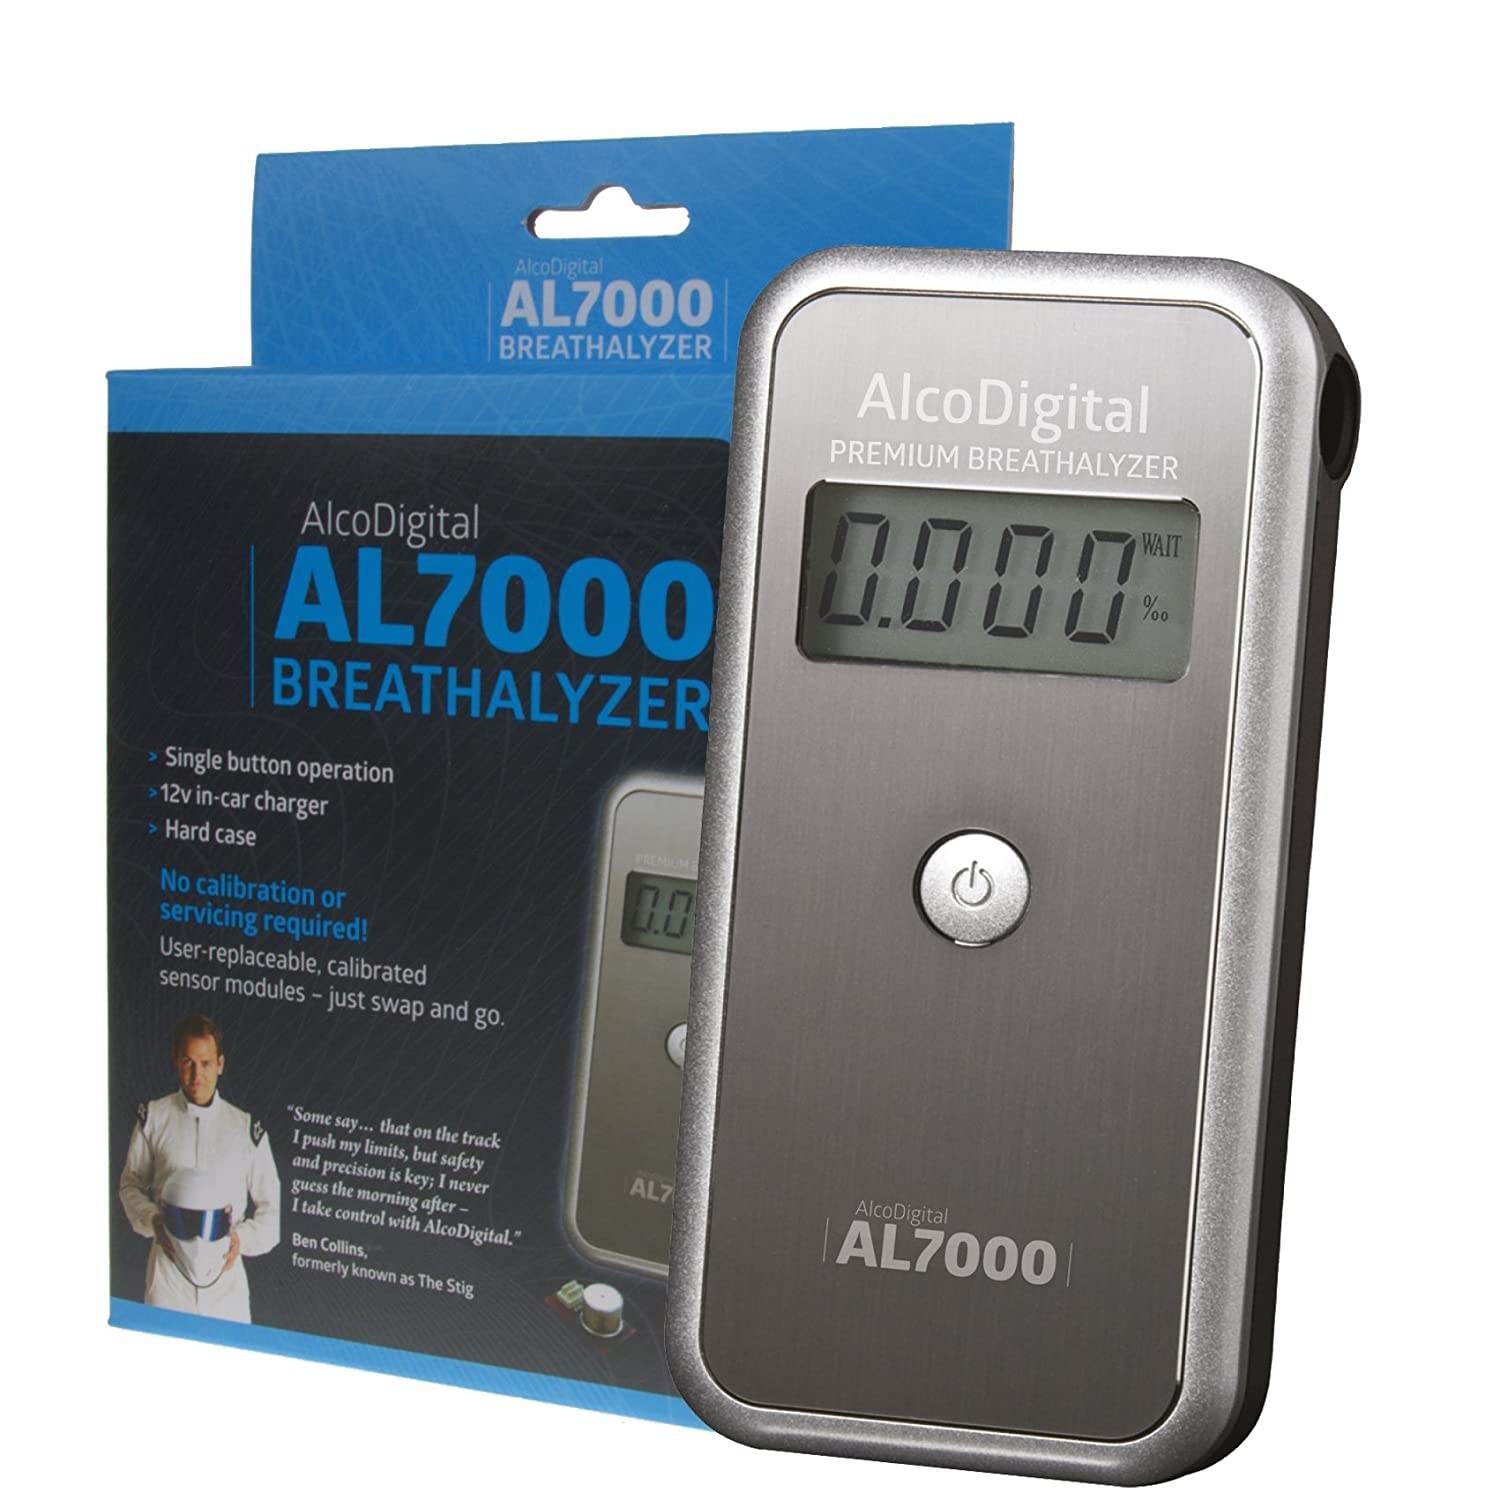 AlcoDigital AL7000 Breathalyzer with replaceable Sensor as recommended by Ben Collins, formerly 'The Stig' formerly ' The Stig'